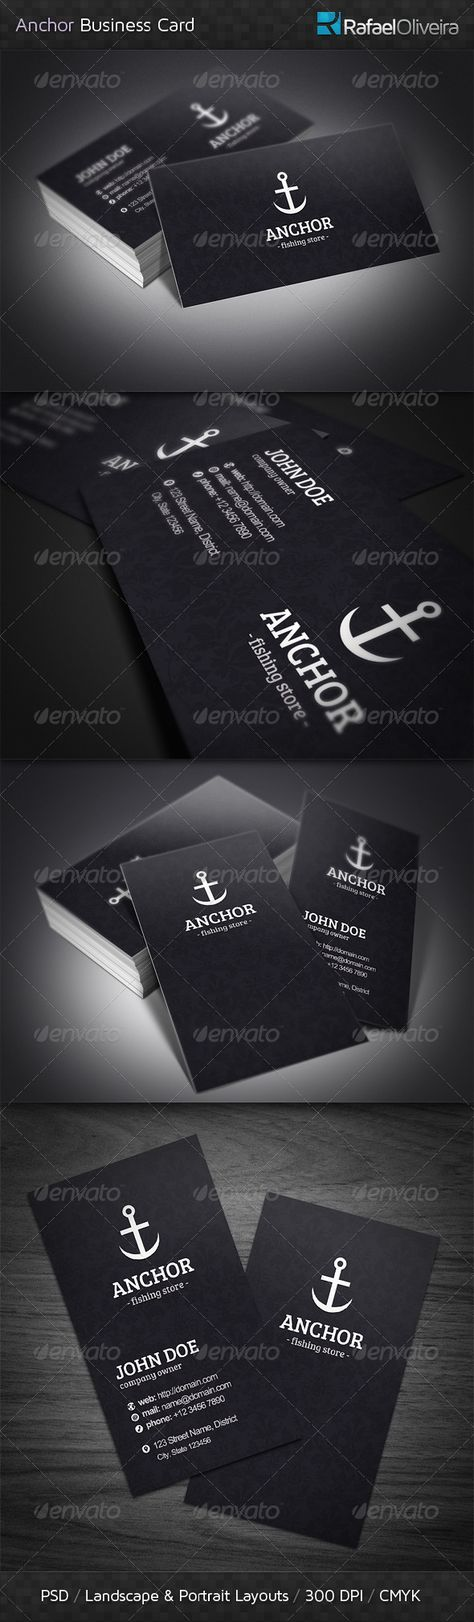 Fishing Business Cards | Business cards and Business